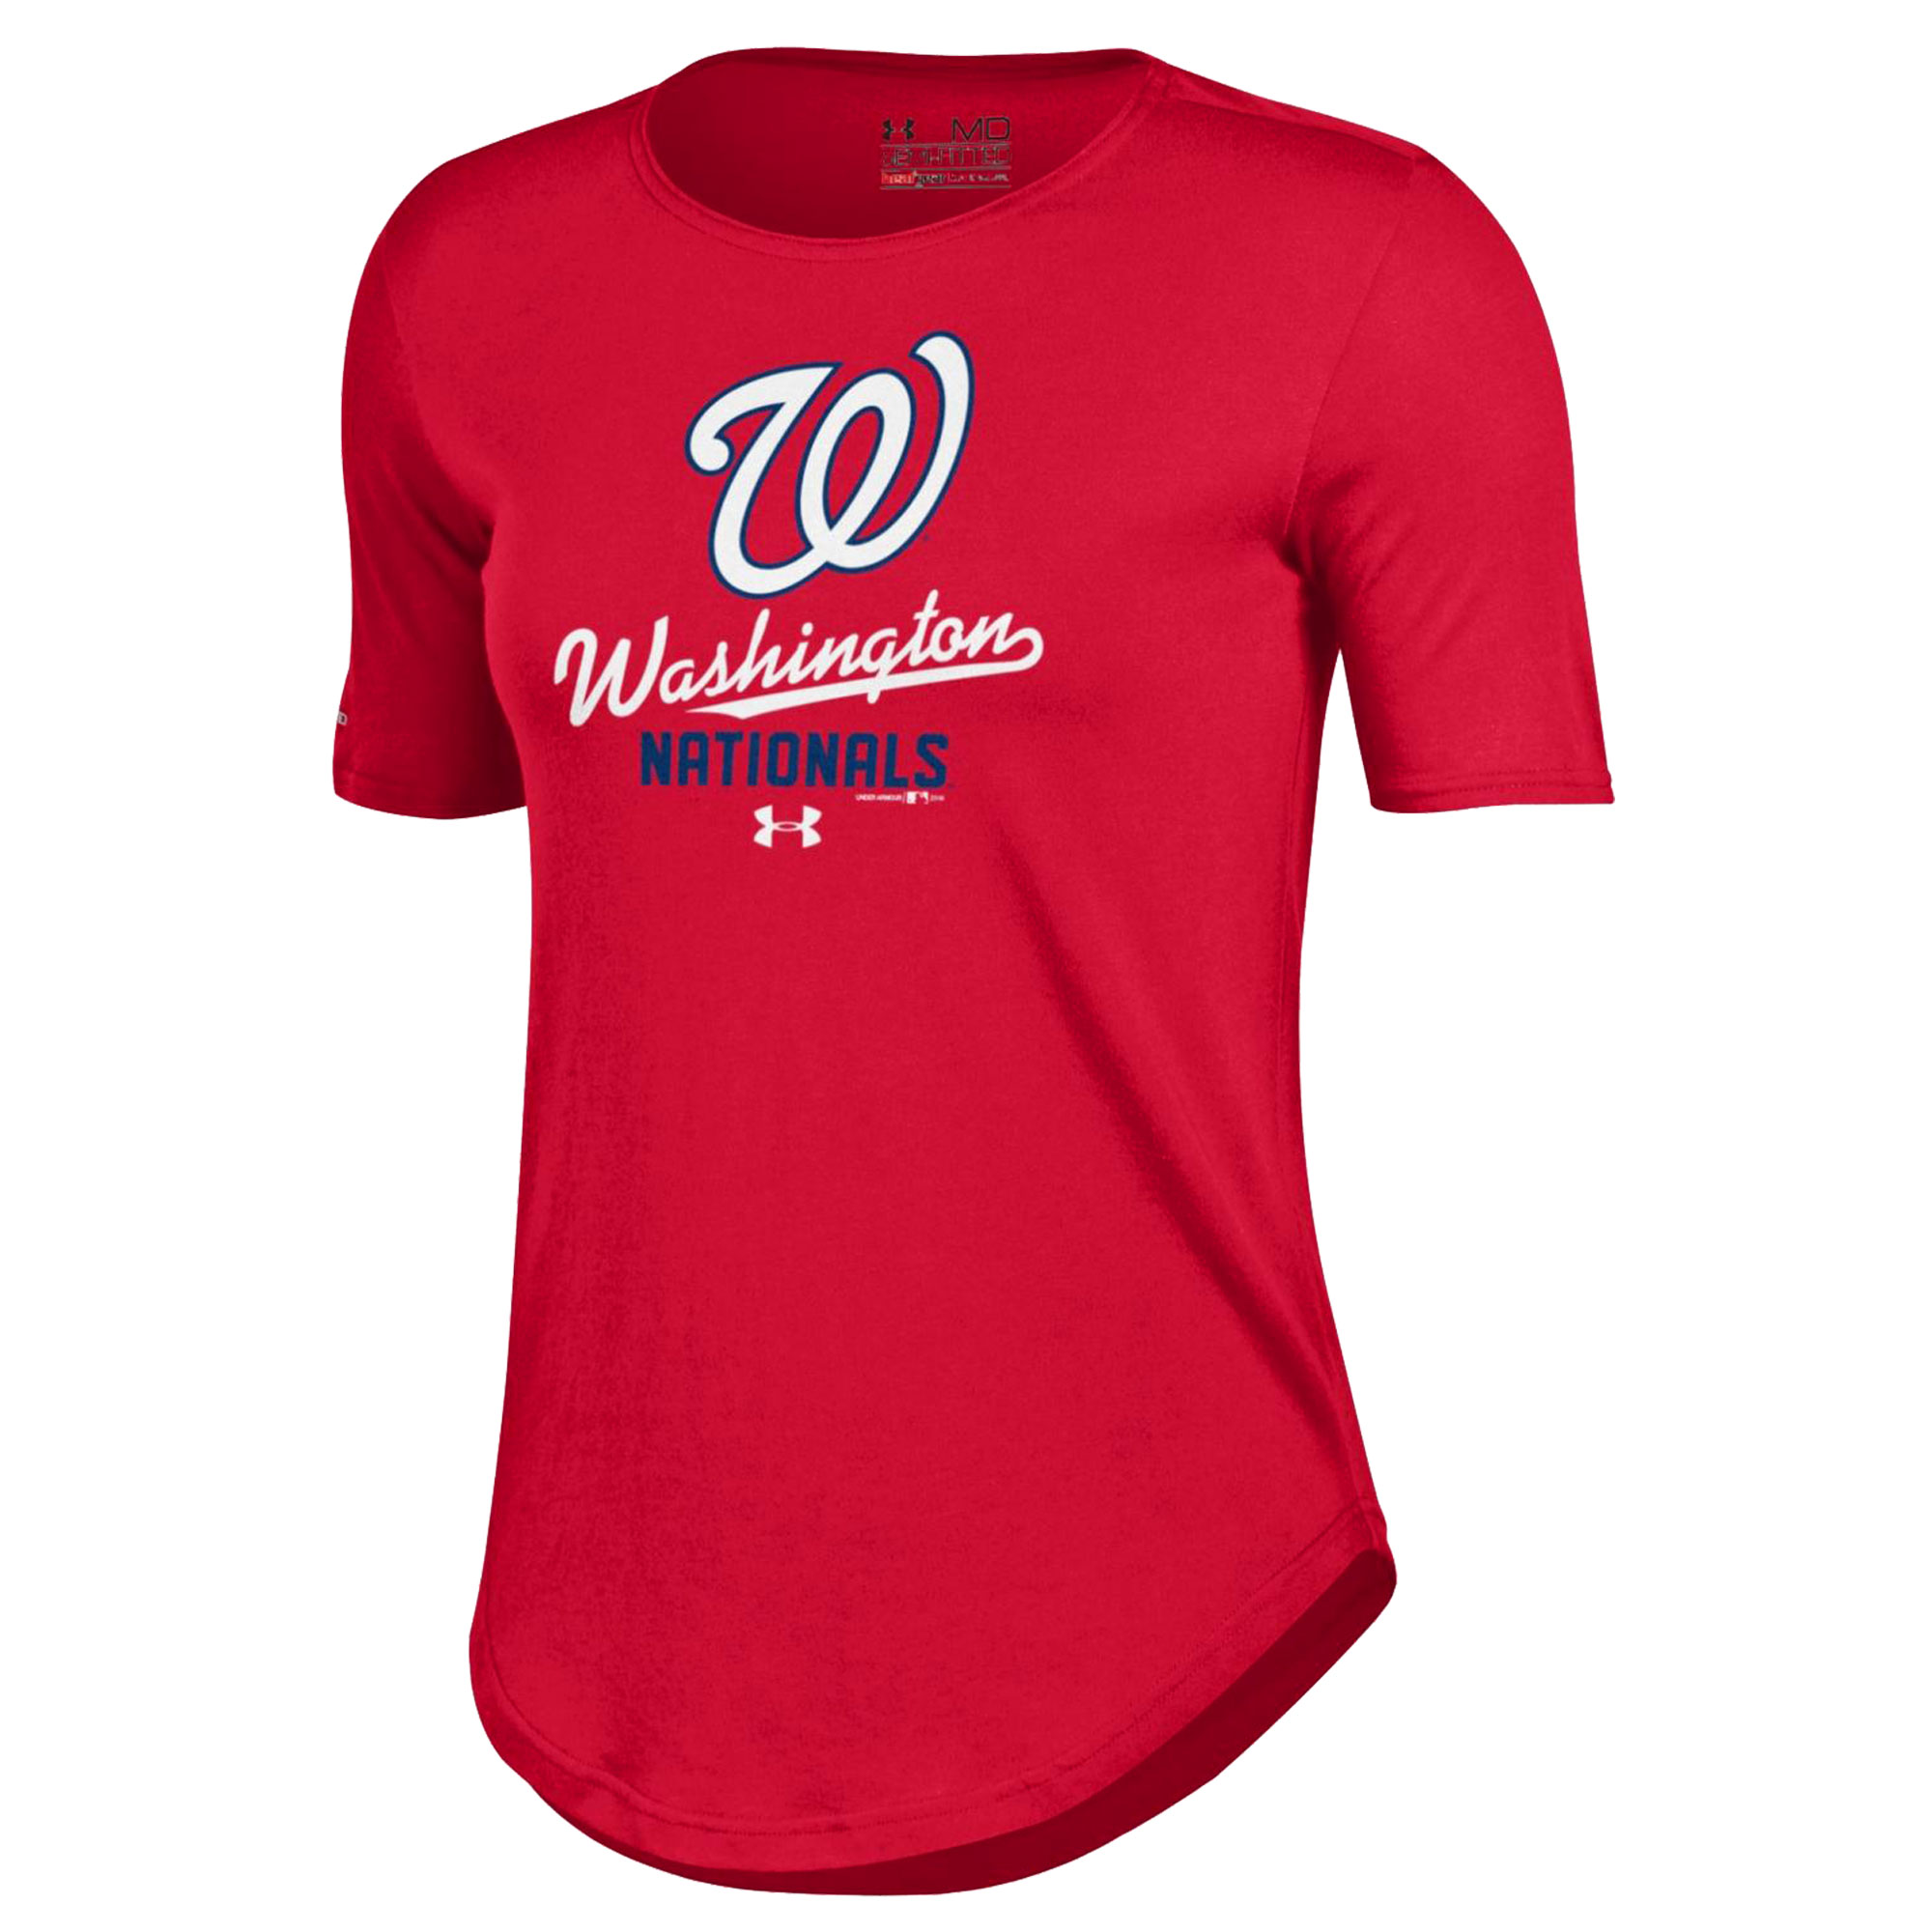 Washington Nationals Under Armour Women's Crew Performance T-Shirt - Red